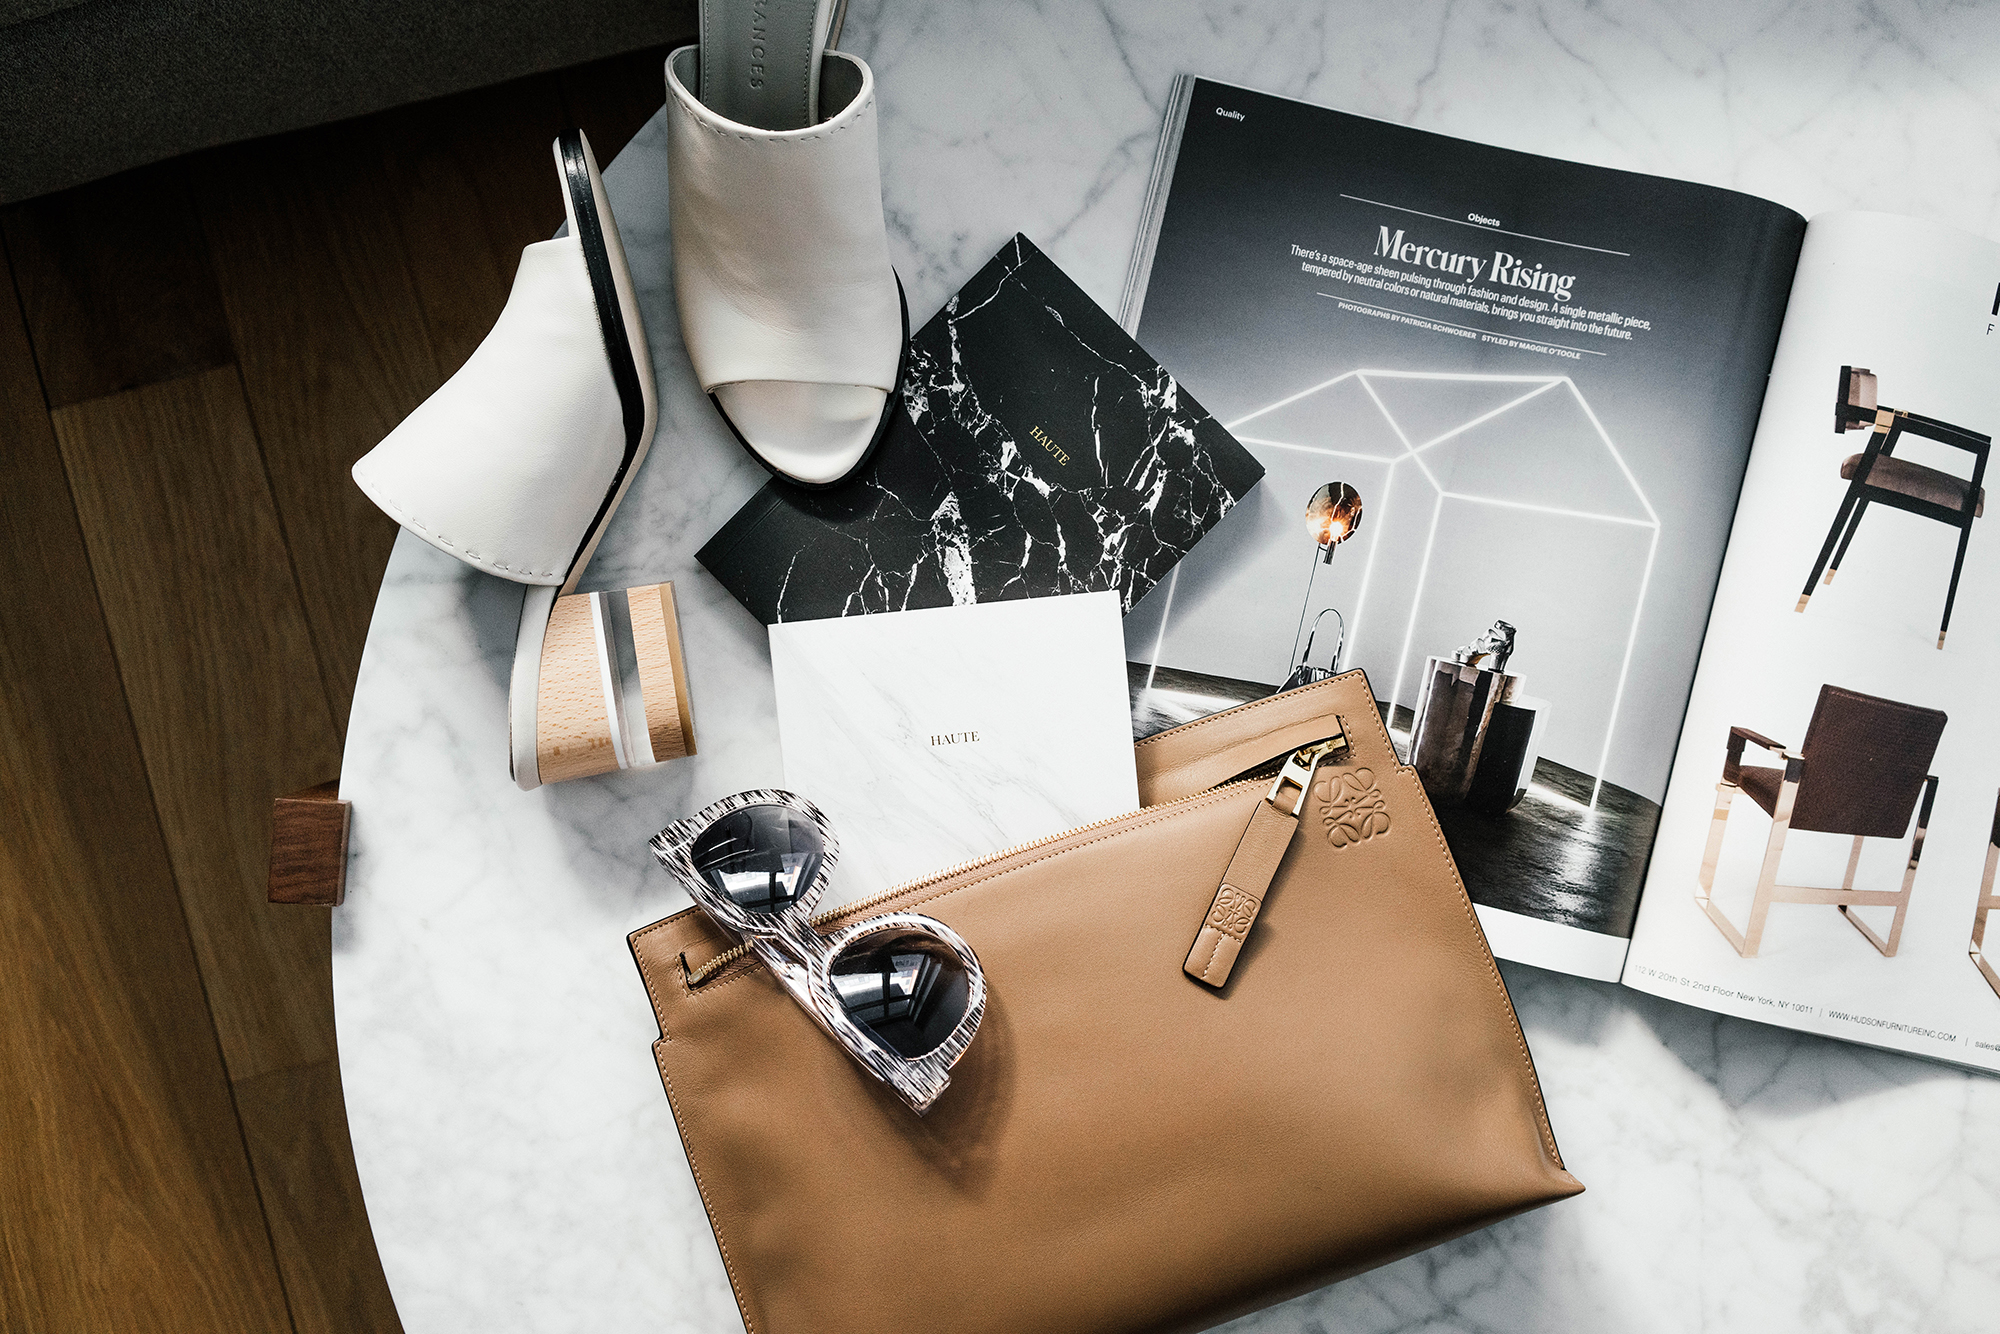 Loewe Clutch ,  Thierry Lasry Sunglasses ,  THP Notebooks ,  Dear Frances Shoes , T Magazine